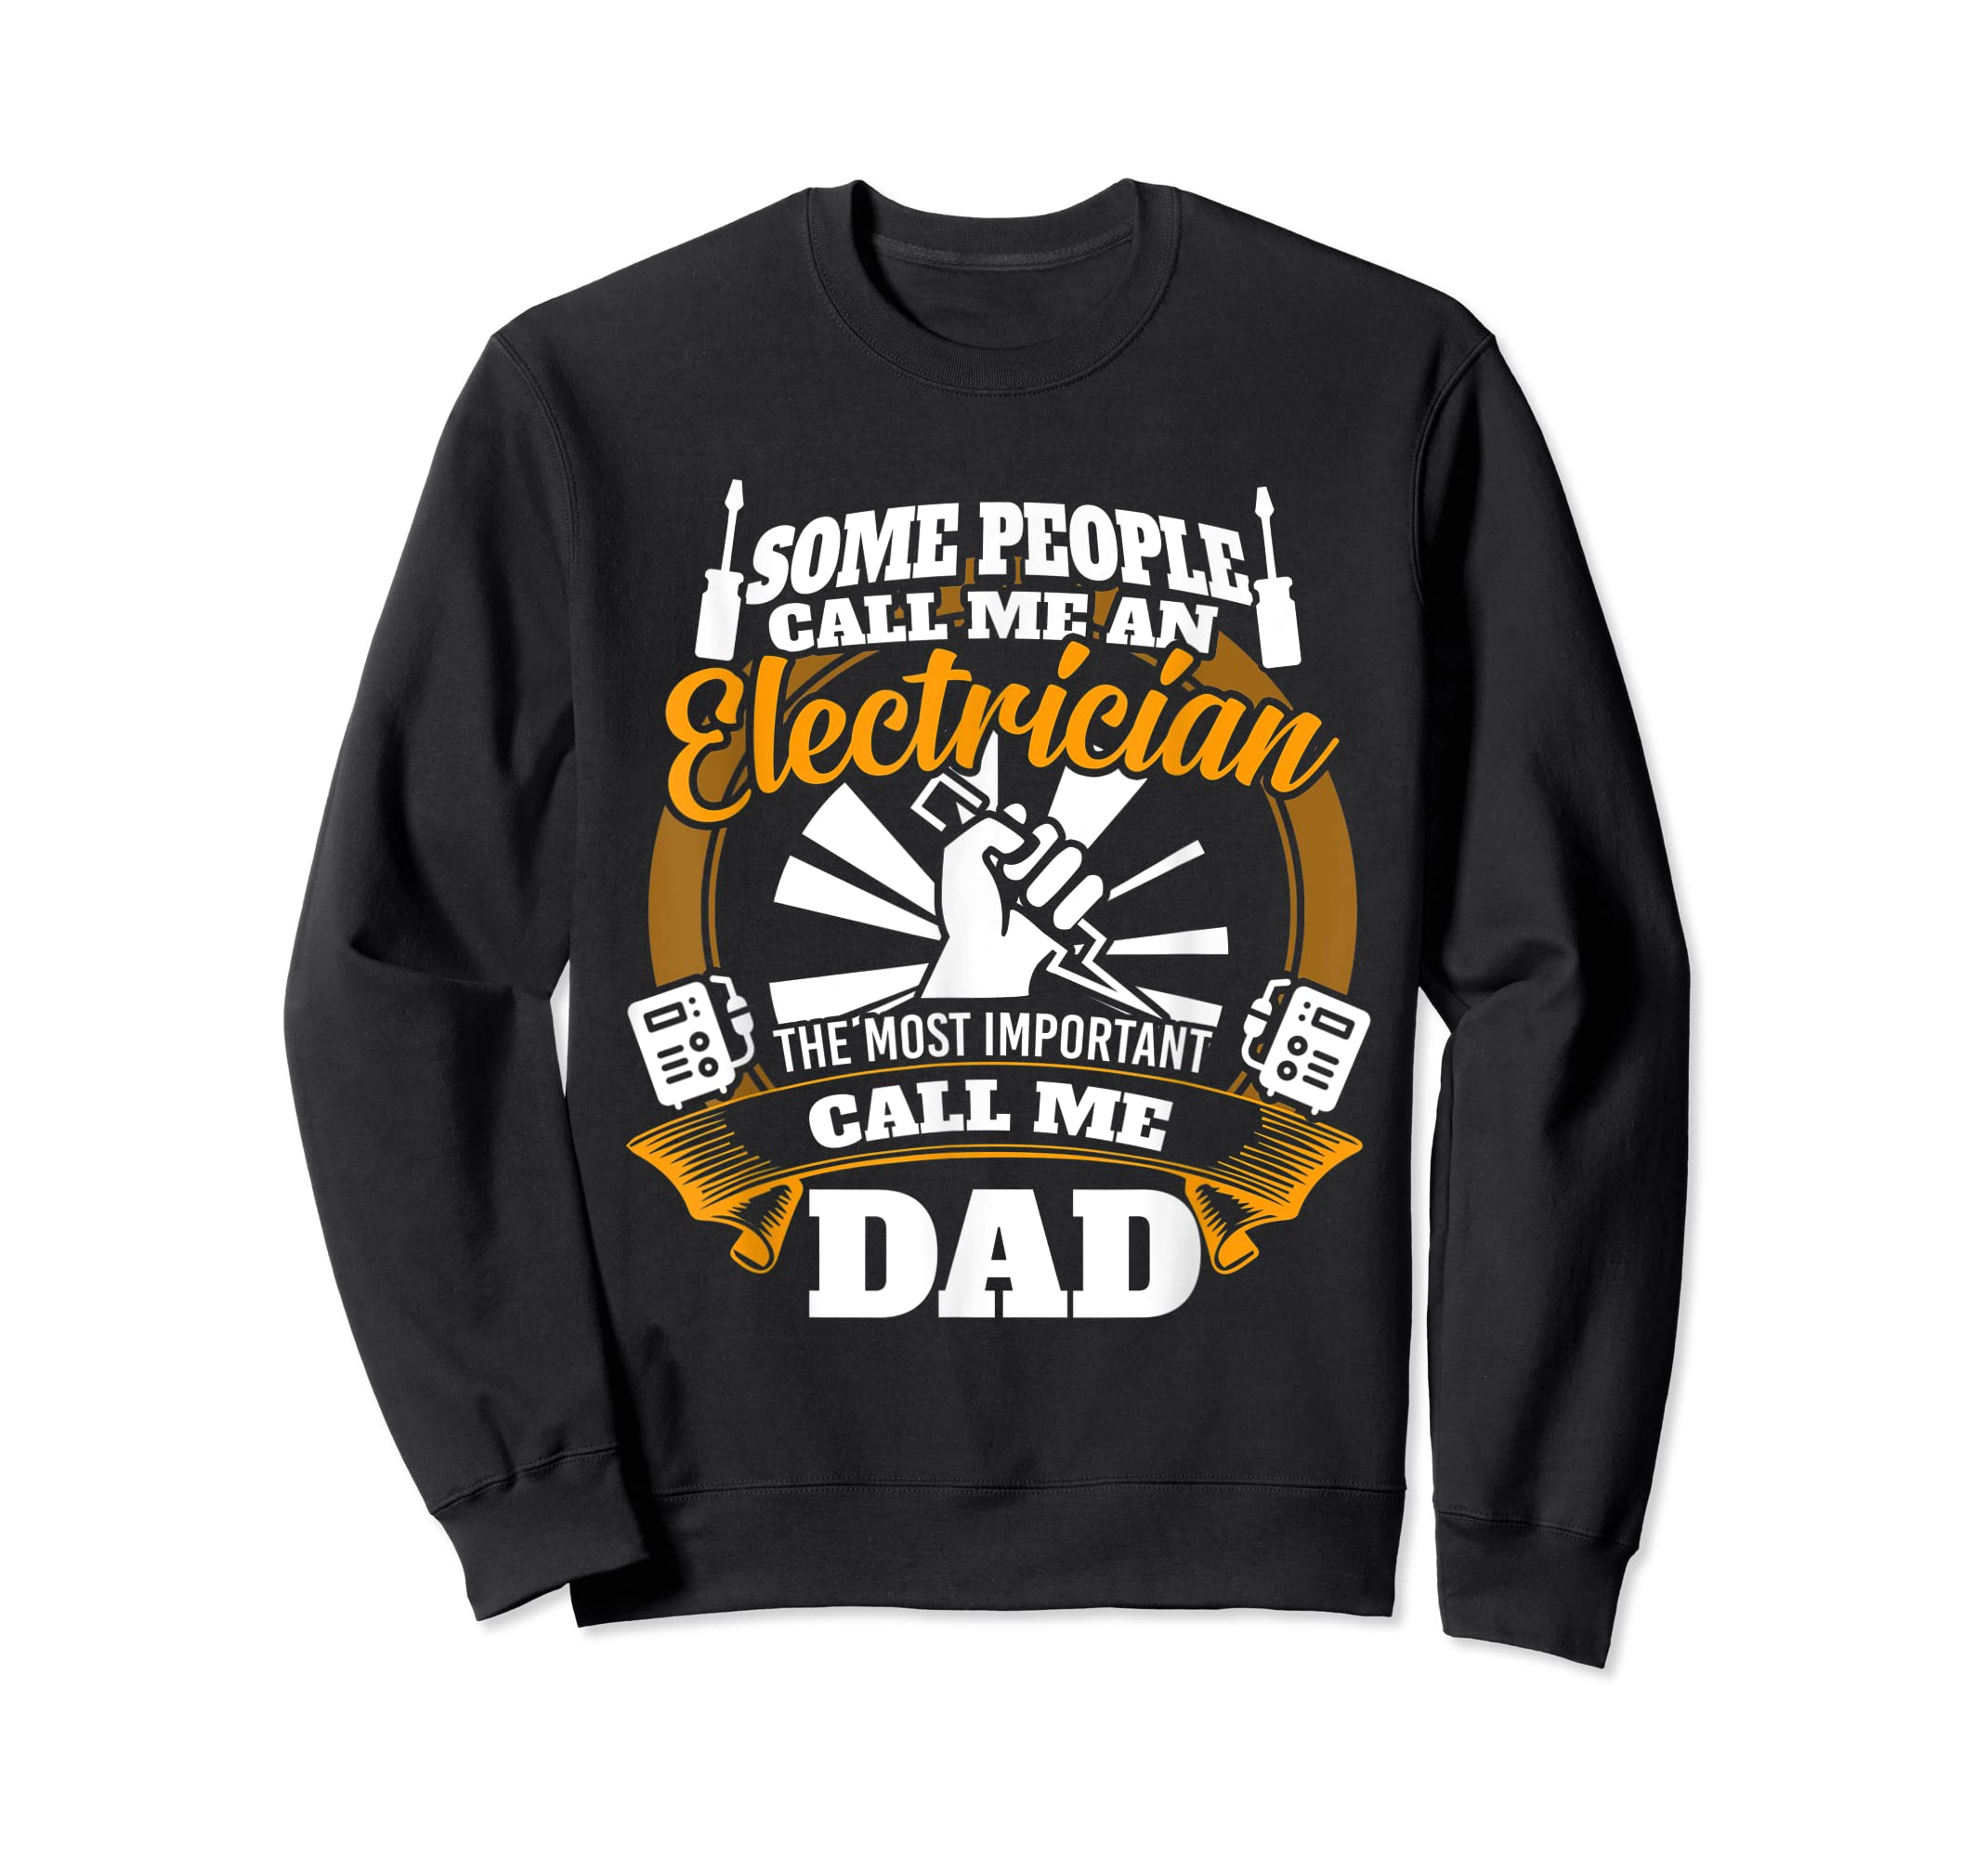 Mens Funny Electrician T-shirt for dad who loves technician gifts-Sweatshirt-Black